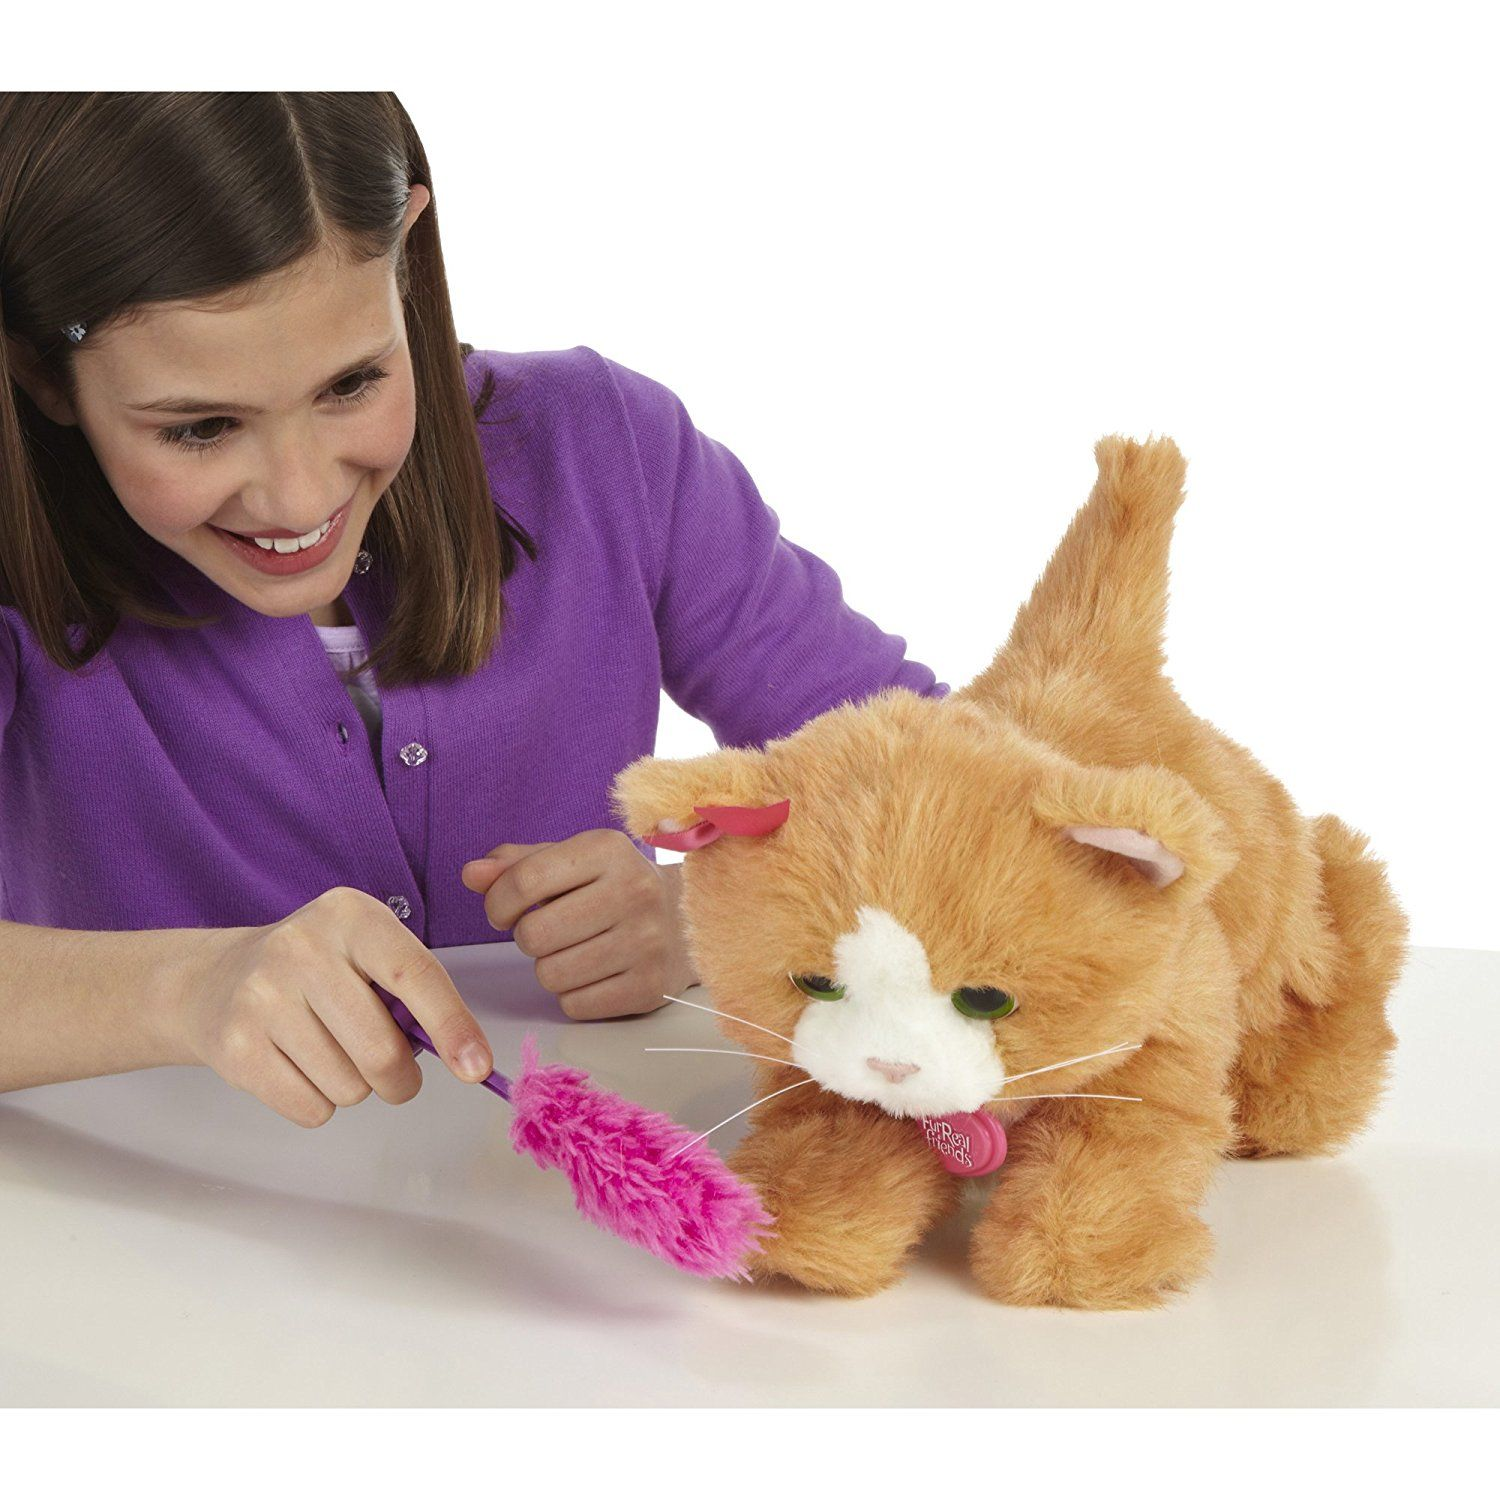 Best Gifts For 6 Year Old Girls In 2017 Itsybitsyfun Com In 2020 Fur Real Friends Cute Cats And Kittens Toys For Girls